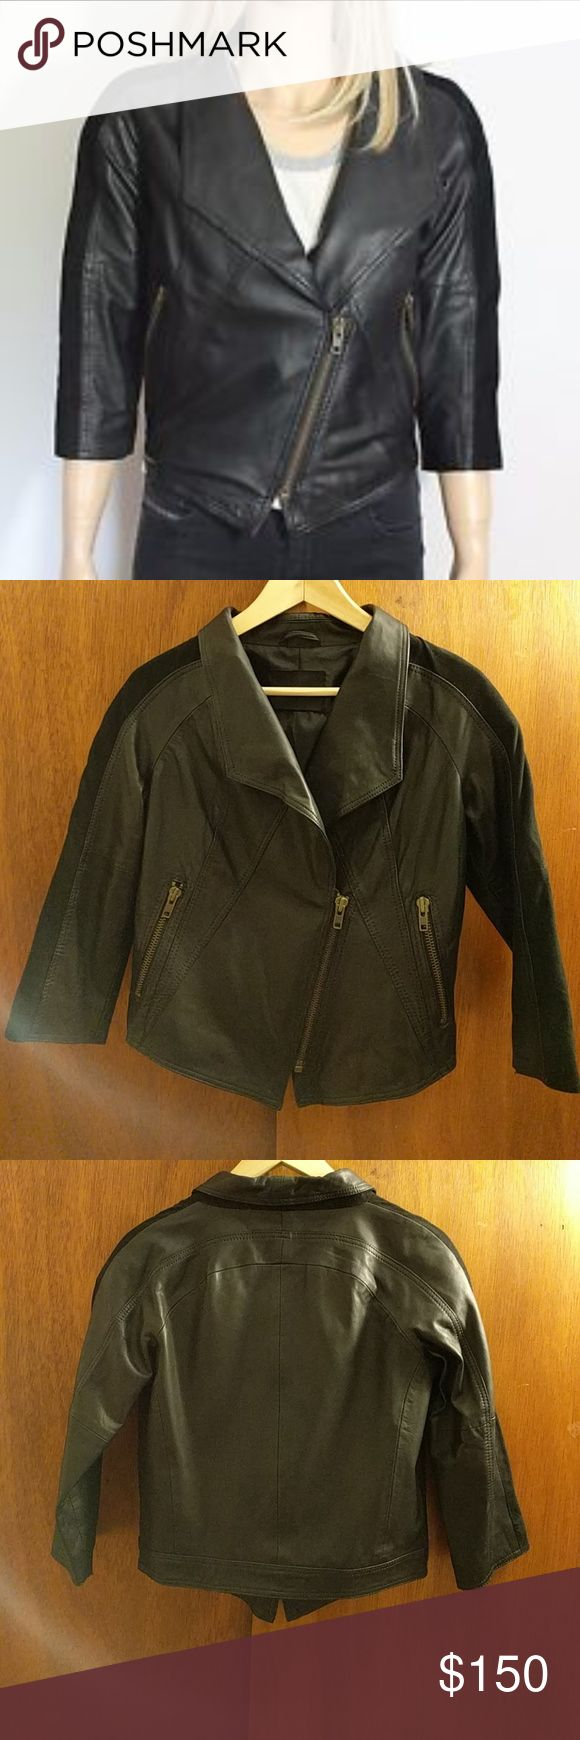 Short Leather Jacket Gestuz Short Leather Jacket. 3/4 Sleeves. Tag reads size 36 which is a 6 in US sizing. Excellent used condition, no rips or tears. Brand is Gestuz sold at Asos. ASOS Jackets & Coats Utility Jackets